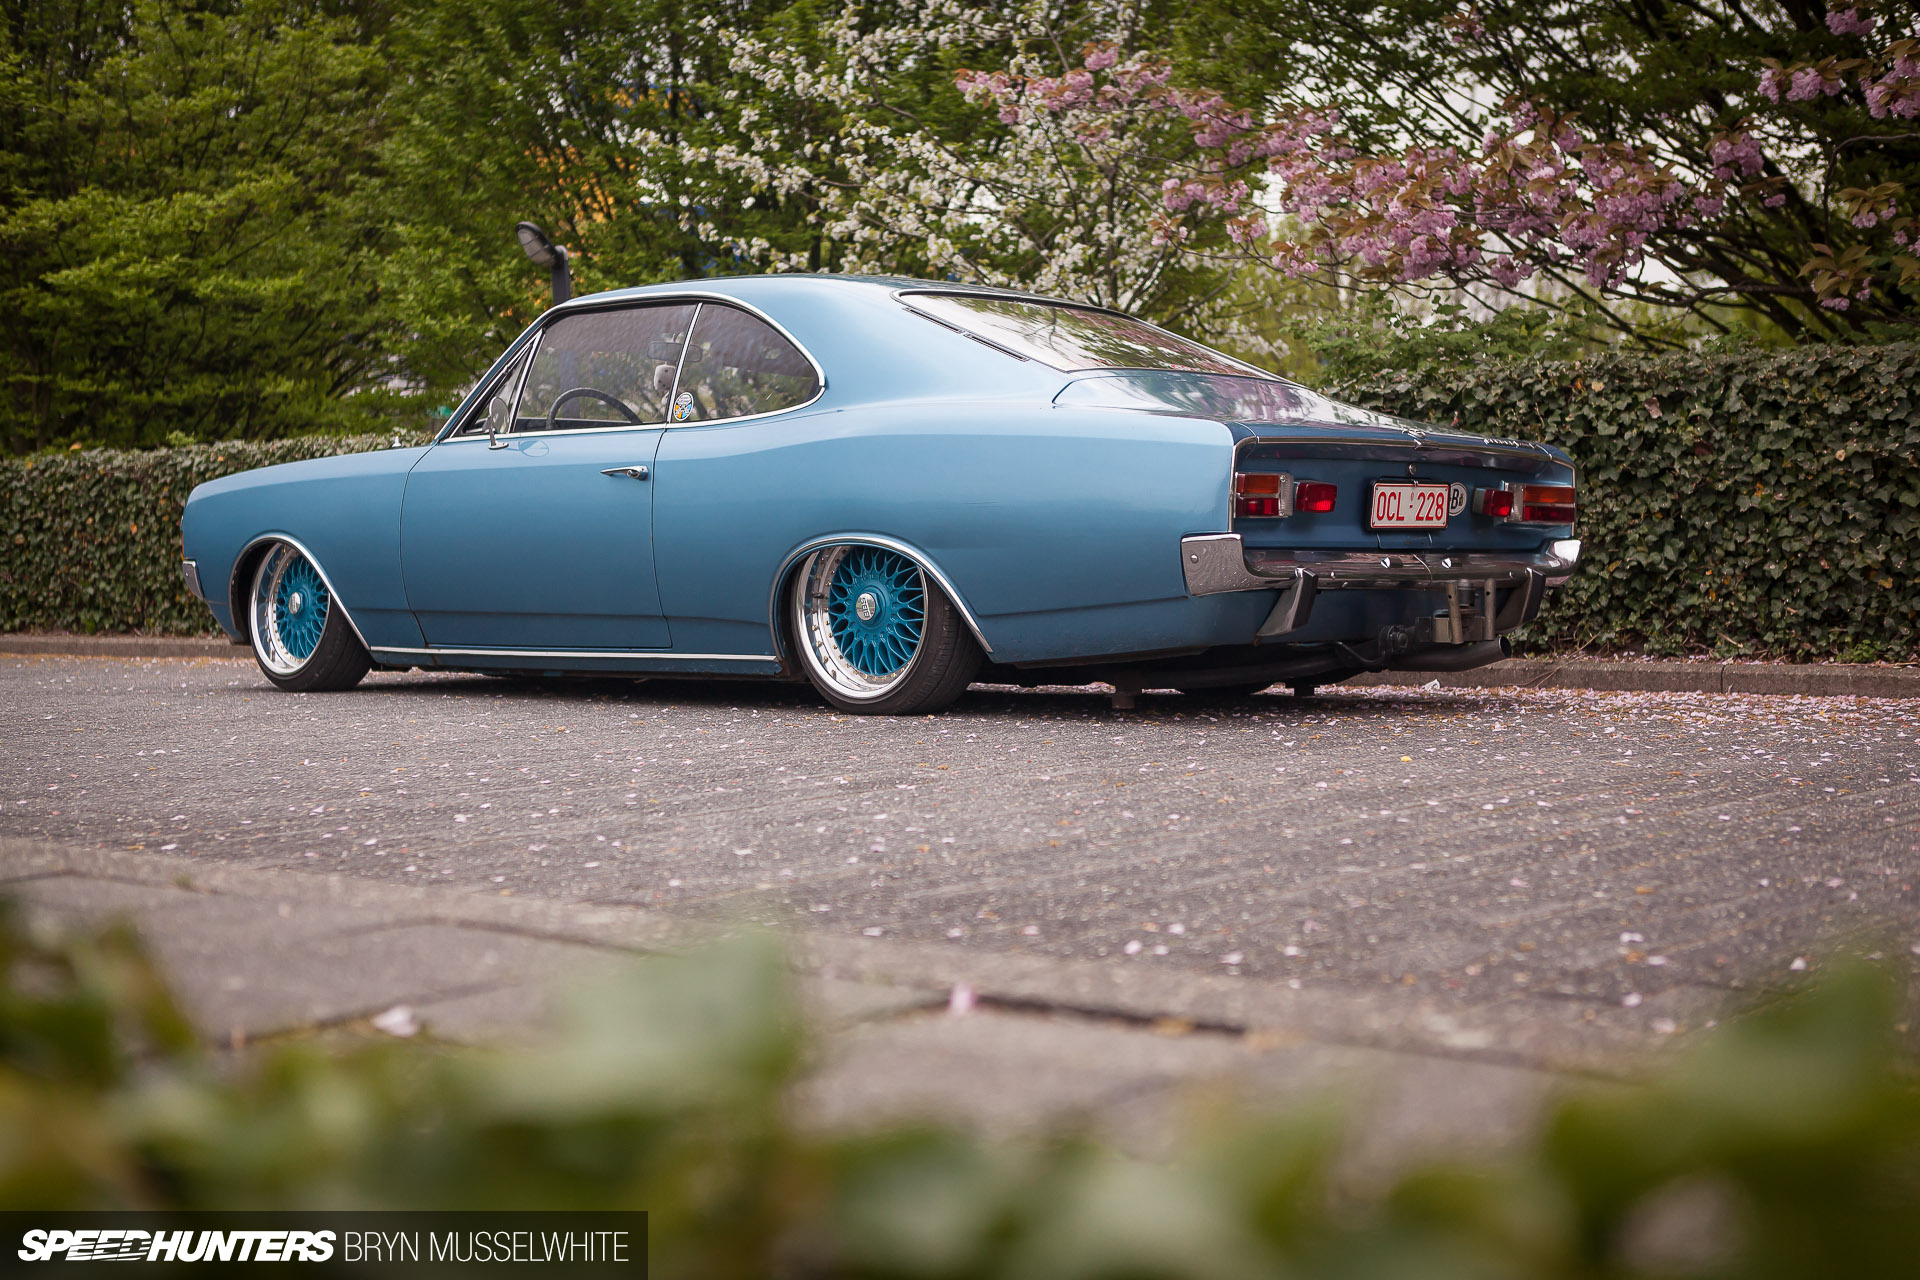 Opel Rekord Coupe #31 | Cars | Pinterest | Coupe and Cars